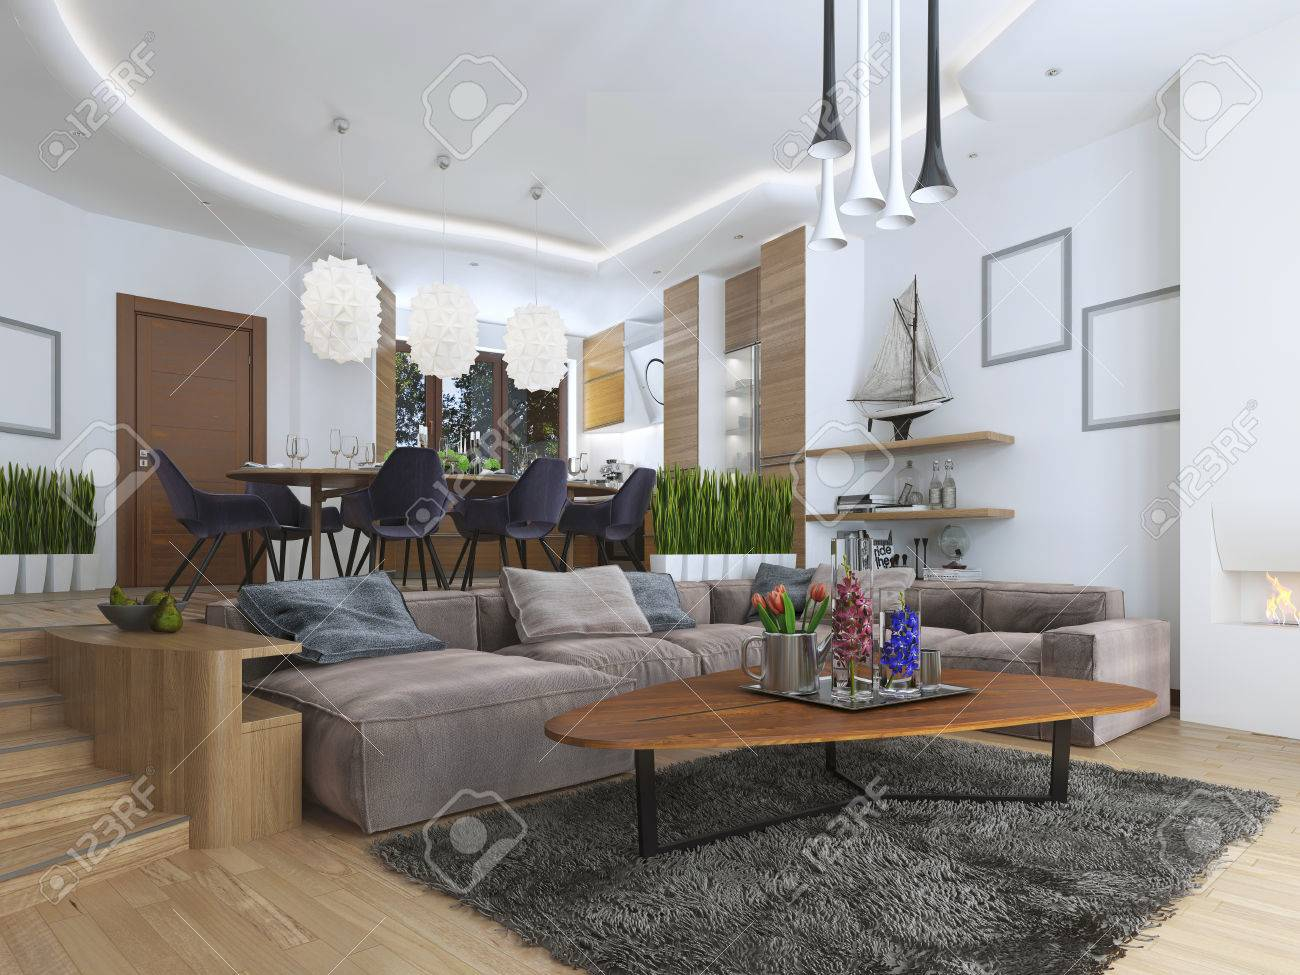 Stock Photo   Studio Apartment With Living Room And Dining Room In A  Contemporary Style. Large Sofa With Designer Coffee Low Table And  Decoration On The ...